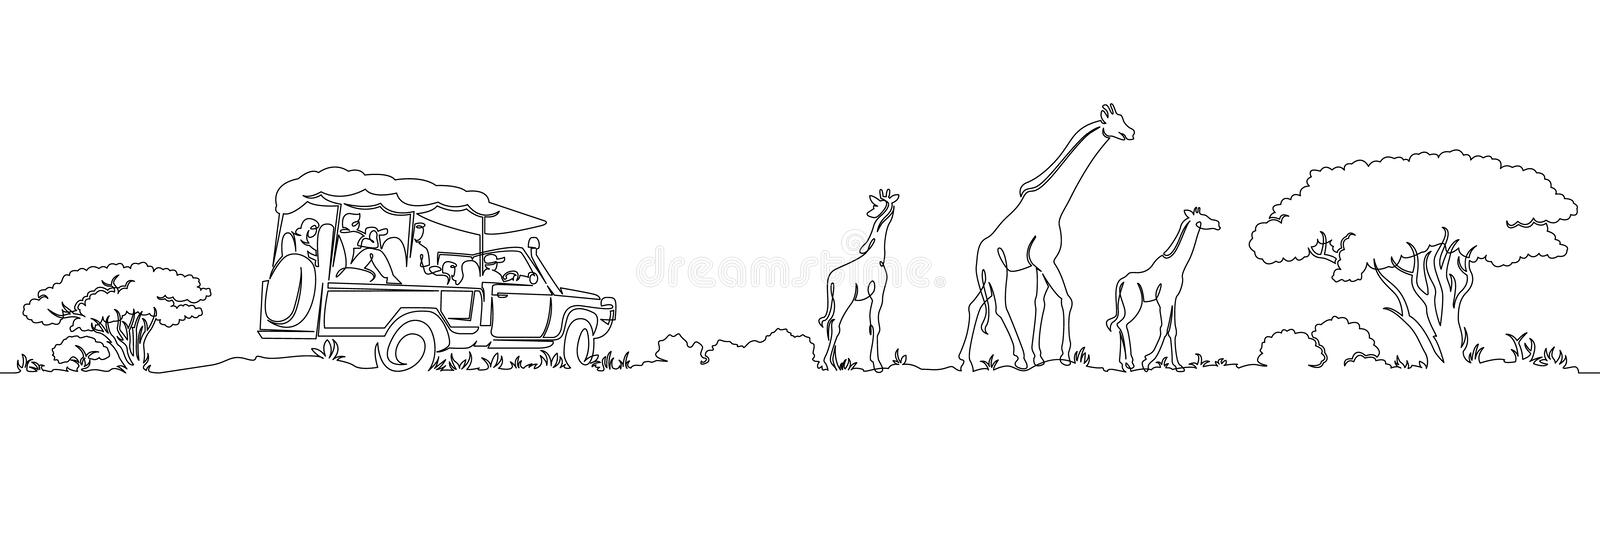 One continuous single painted safari panorama of Africa`s giraffes landscape stock illustration